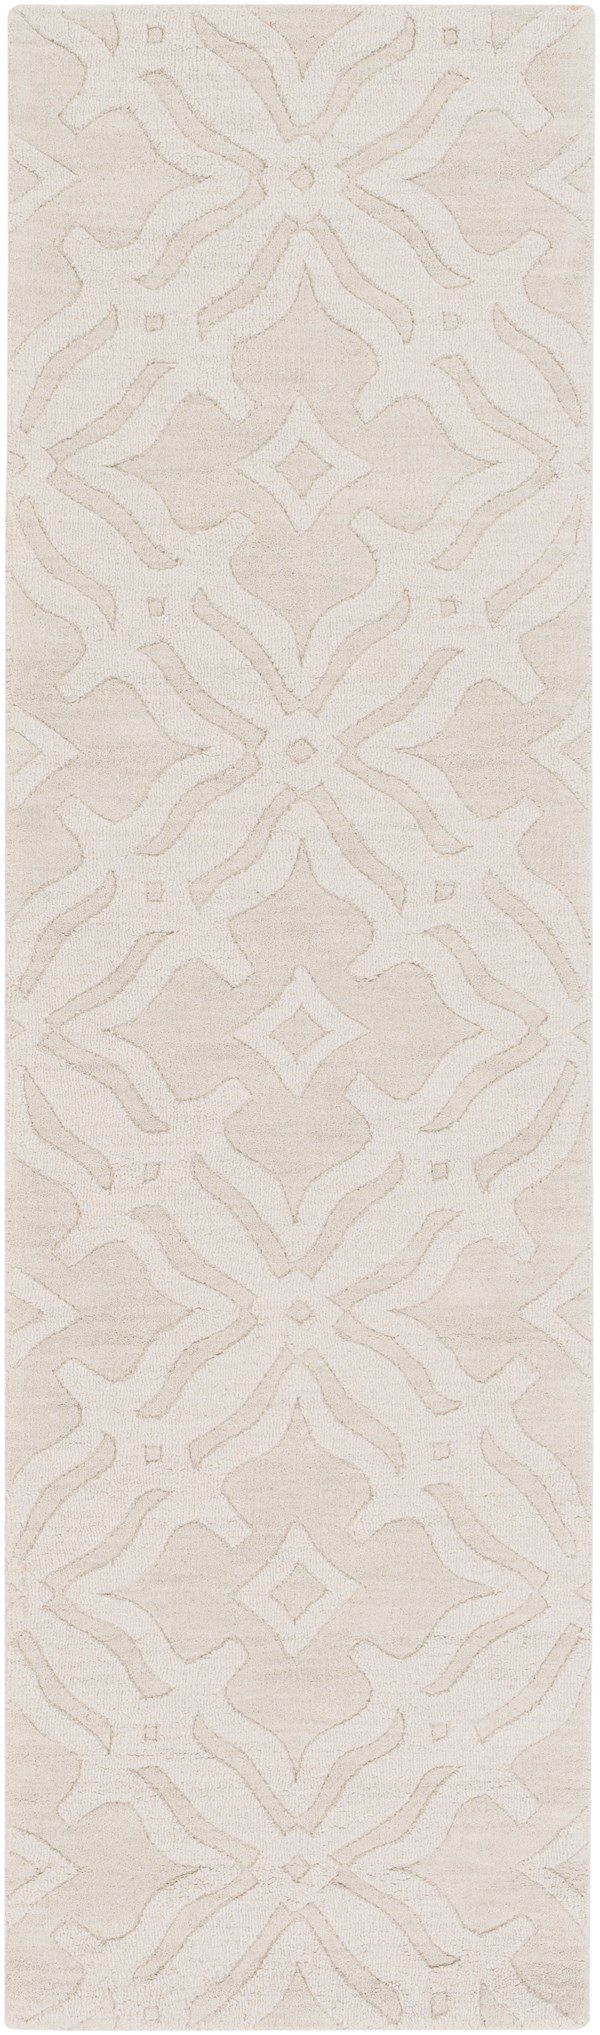 Ivory, (AWMP-4017) Textured Solid Area Rug